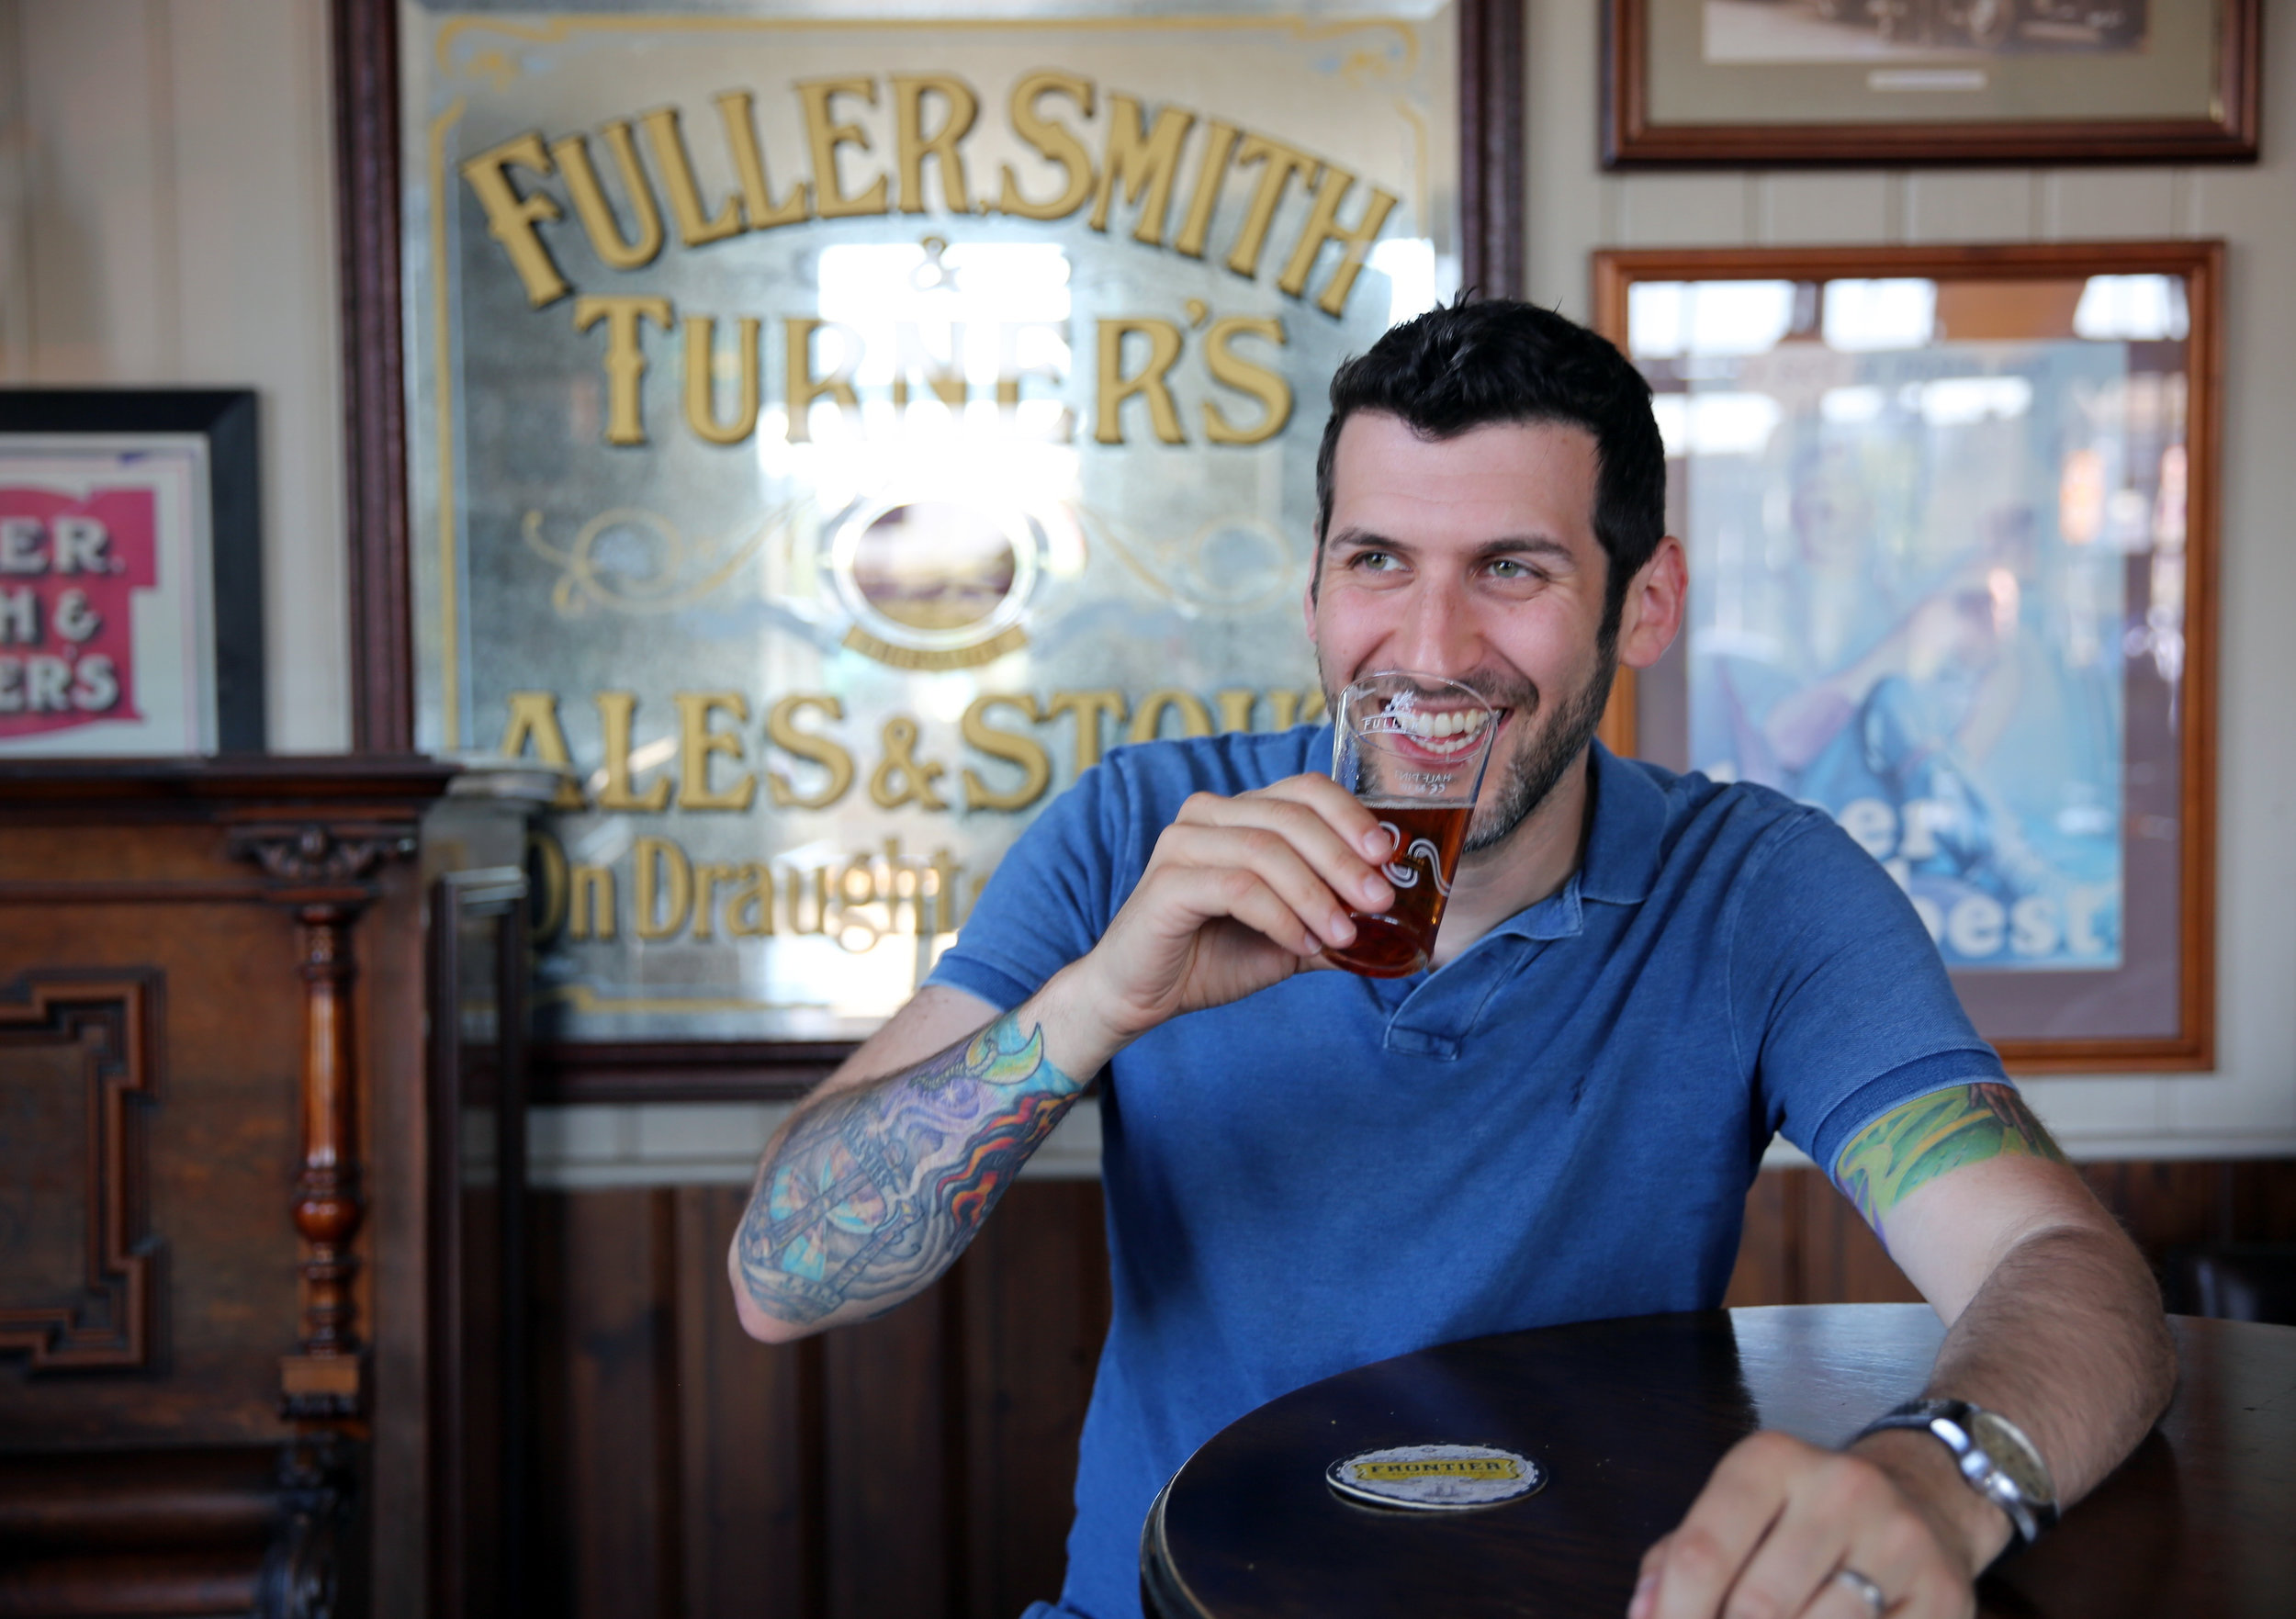 BEVERAGE WRITING - I have written about beer, wine, spirits, and coffee for Food & Wine, Tasting Table, Thrillist, Wine Enthusiast, Food Republic, Esquire, Vanity Fair, Men's Journal, Playboy, Saveur, Quartz, Travel + Leisure, DuJour, Draft, Salon, Beverage Media, Supercall, All About Beer, Fatherly, Vinepair, Mr. Porter, Serious Eats, VICE Munchies, The Daily Meal, and the Institute of Culinary Education.